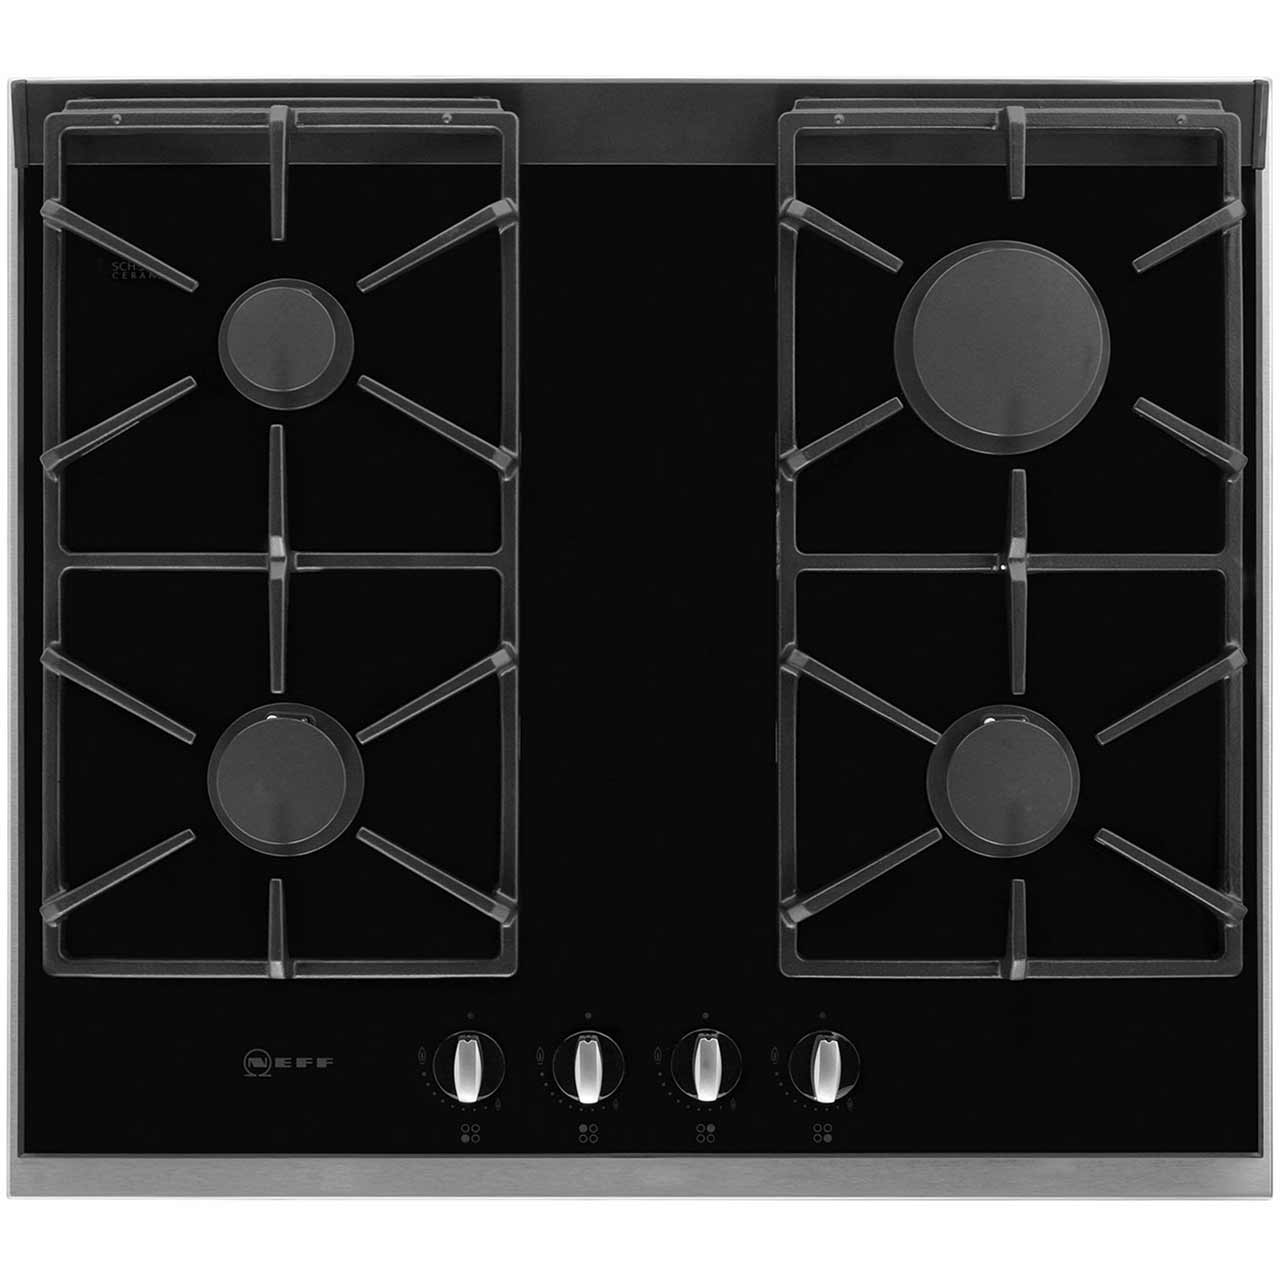 Neff T66S66N0 Integrated Gas Hob in Stainless Steel